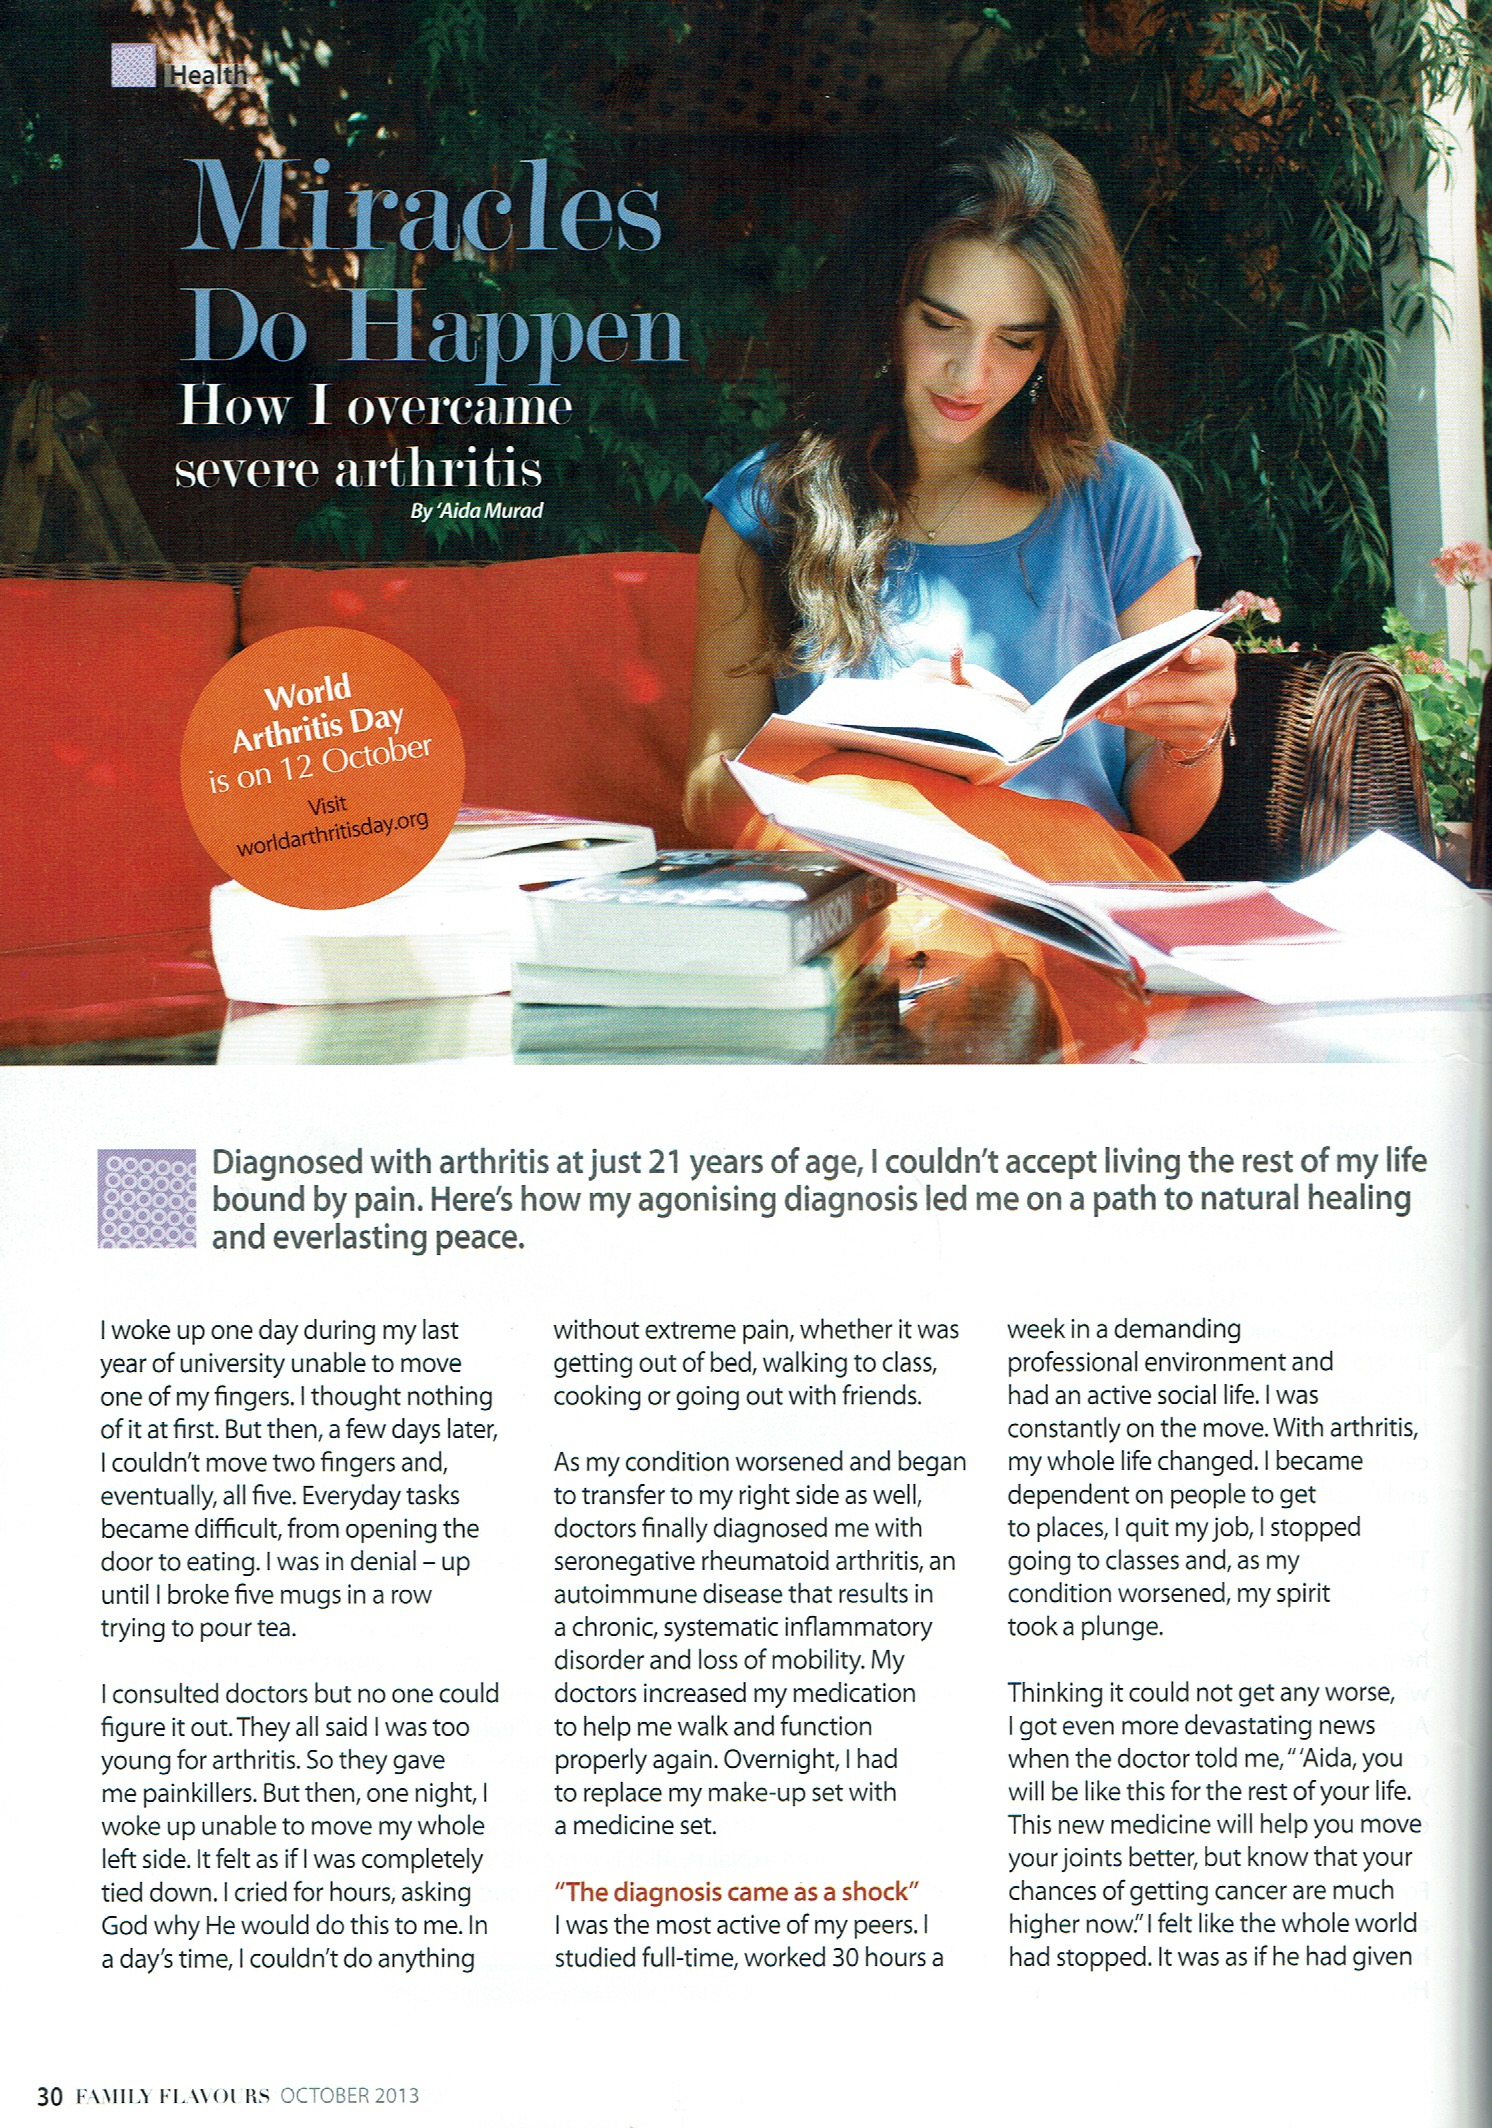 Miracles Do Happen - Article featured in Family Flavors magazine in Jordan part 1